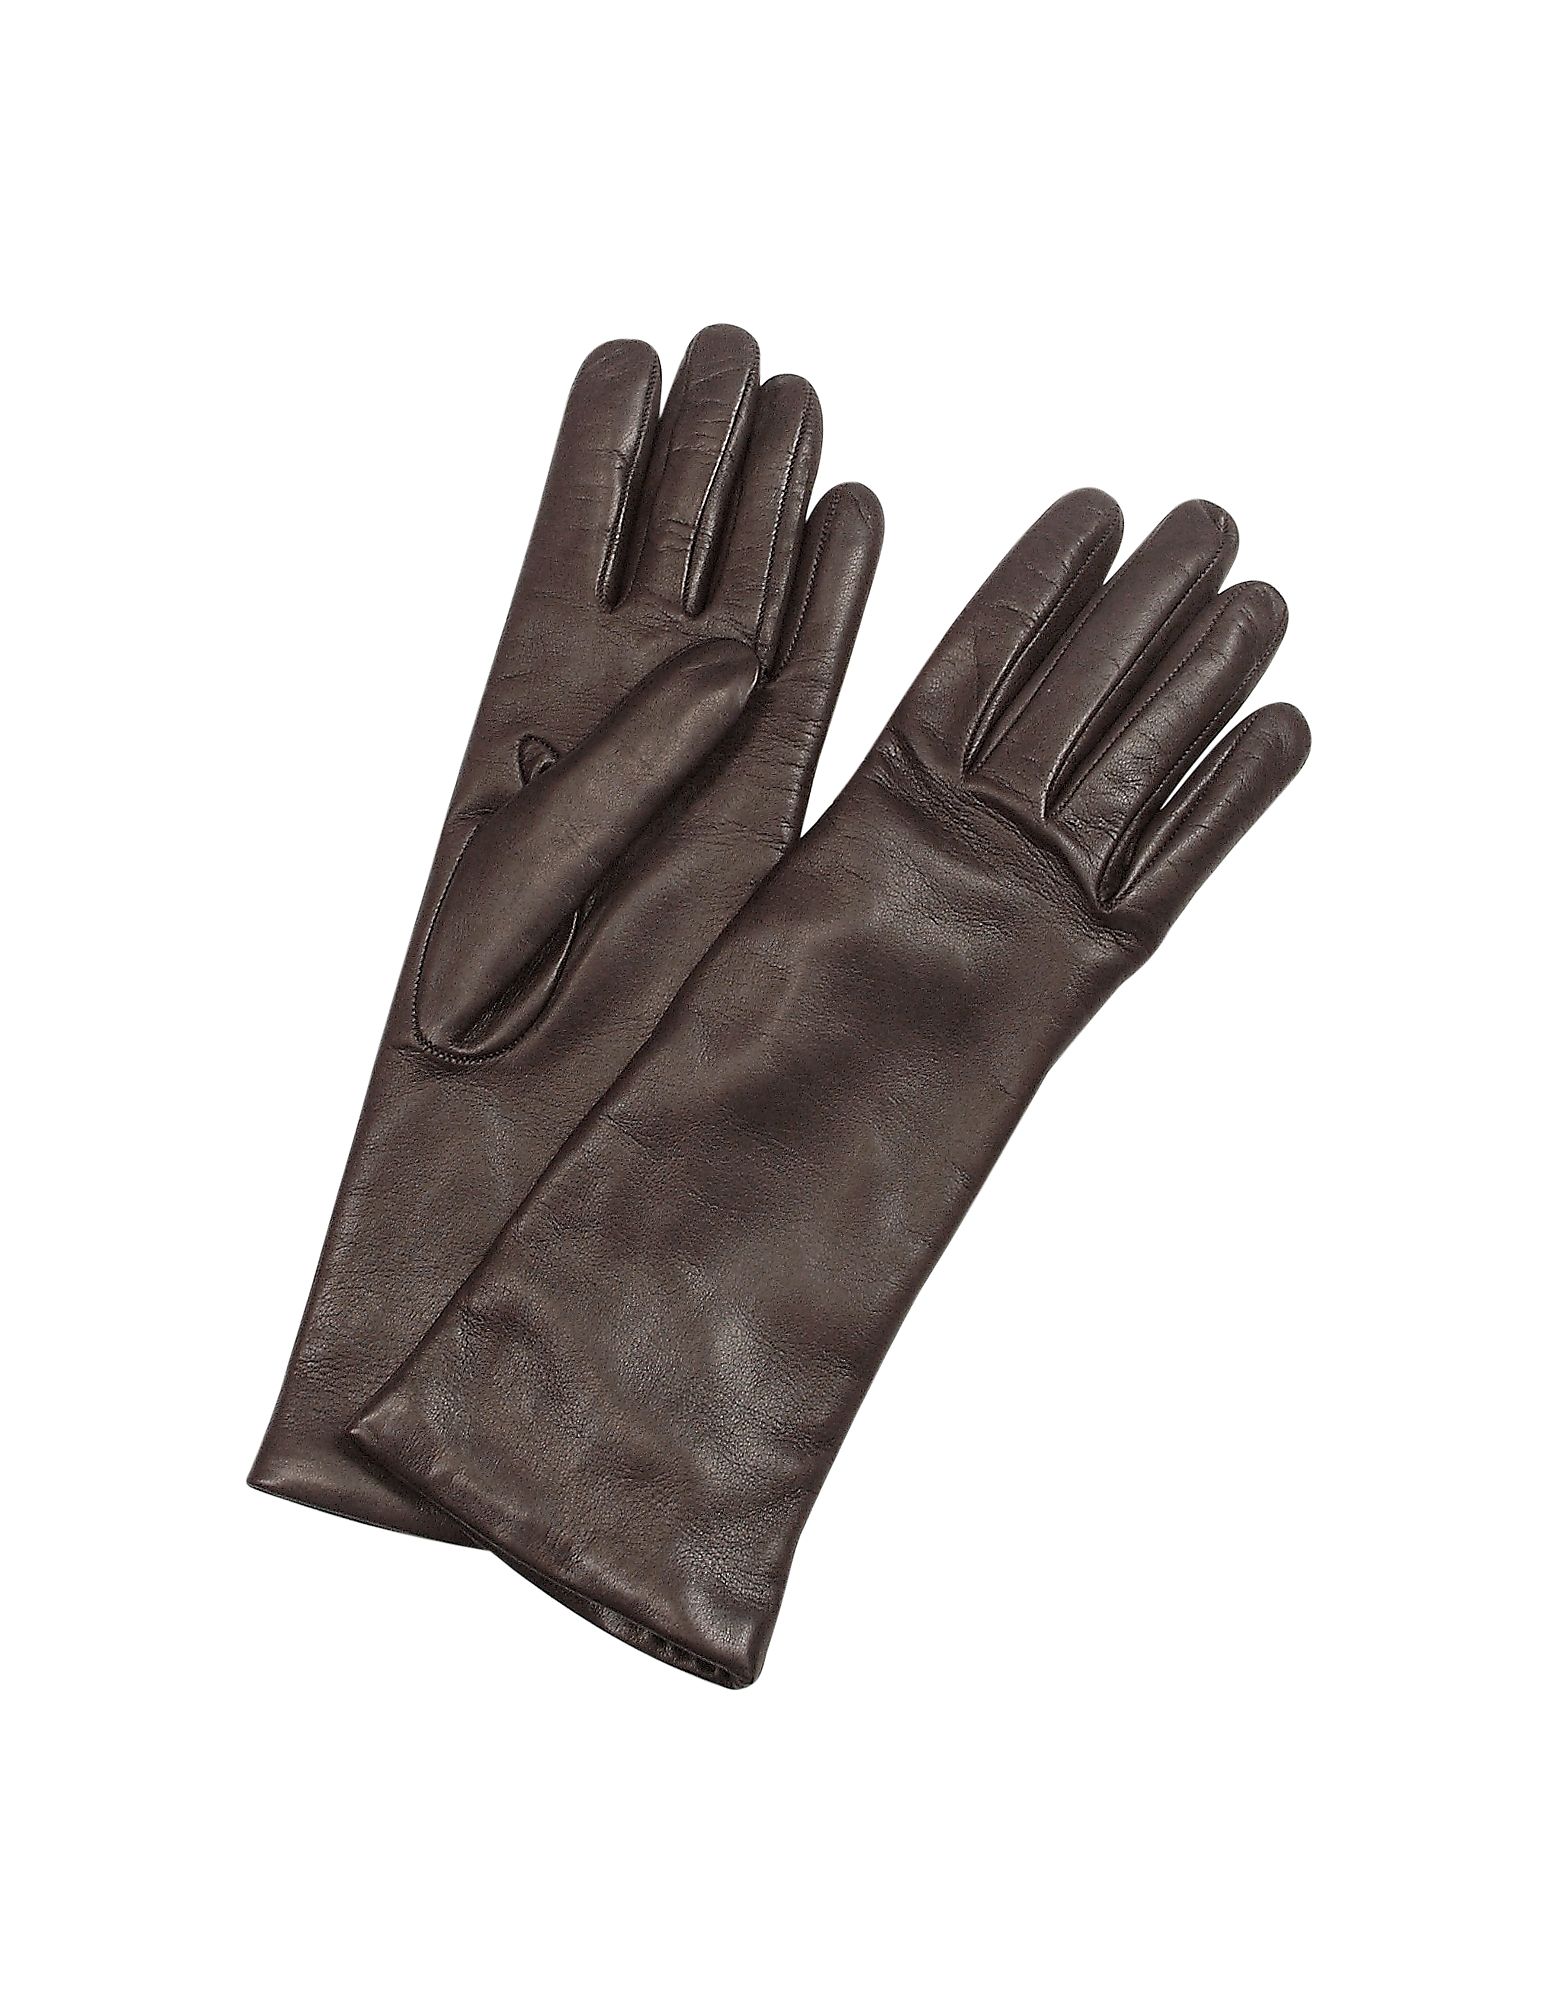 Victorian Gloves | Victorian Accessories Forzieri Designer Womens Gloves Womens Cashmere Lined Dark Brown Italian Leather Long Gloves $162.00 AT vintagedancer.com